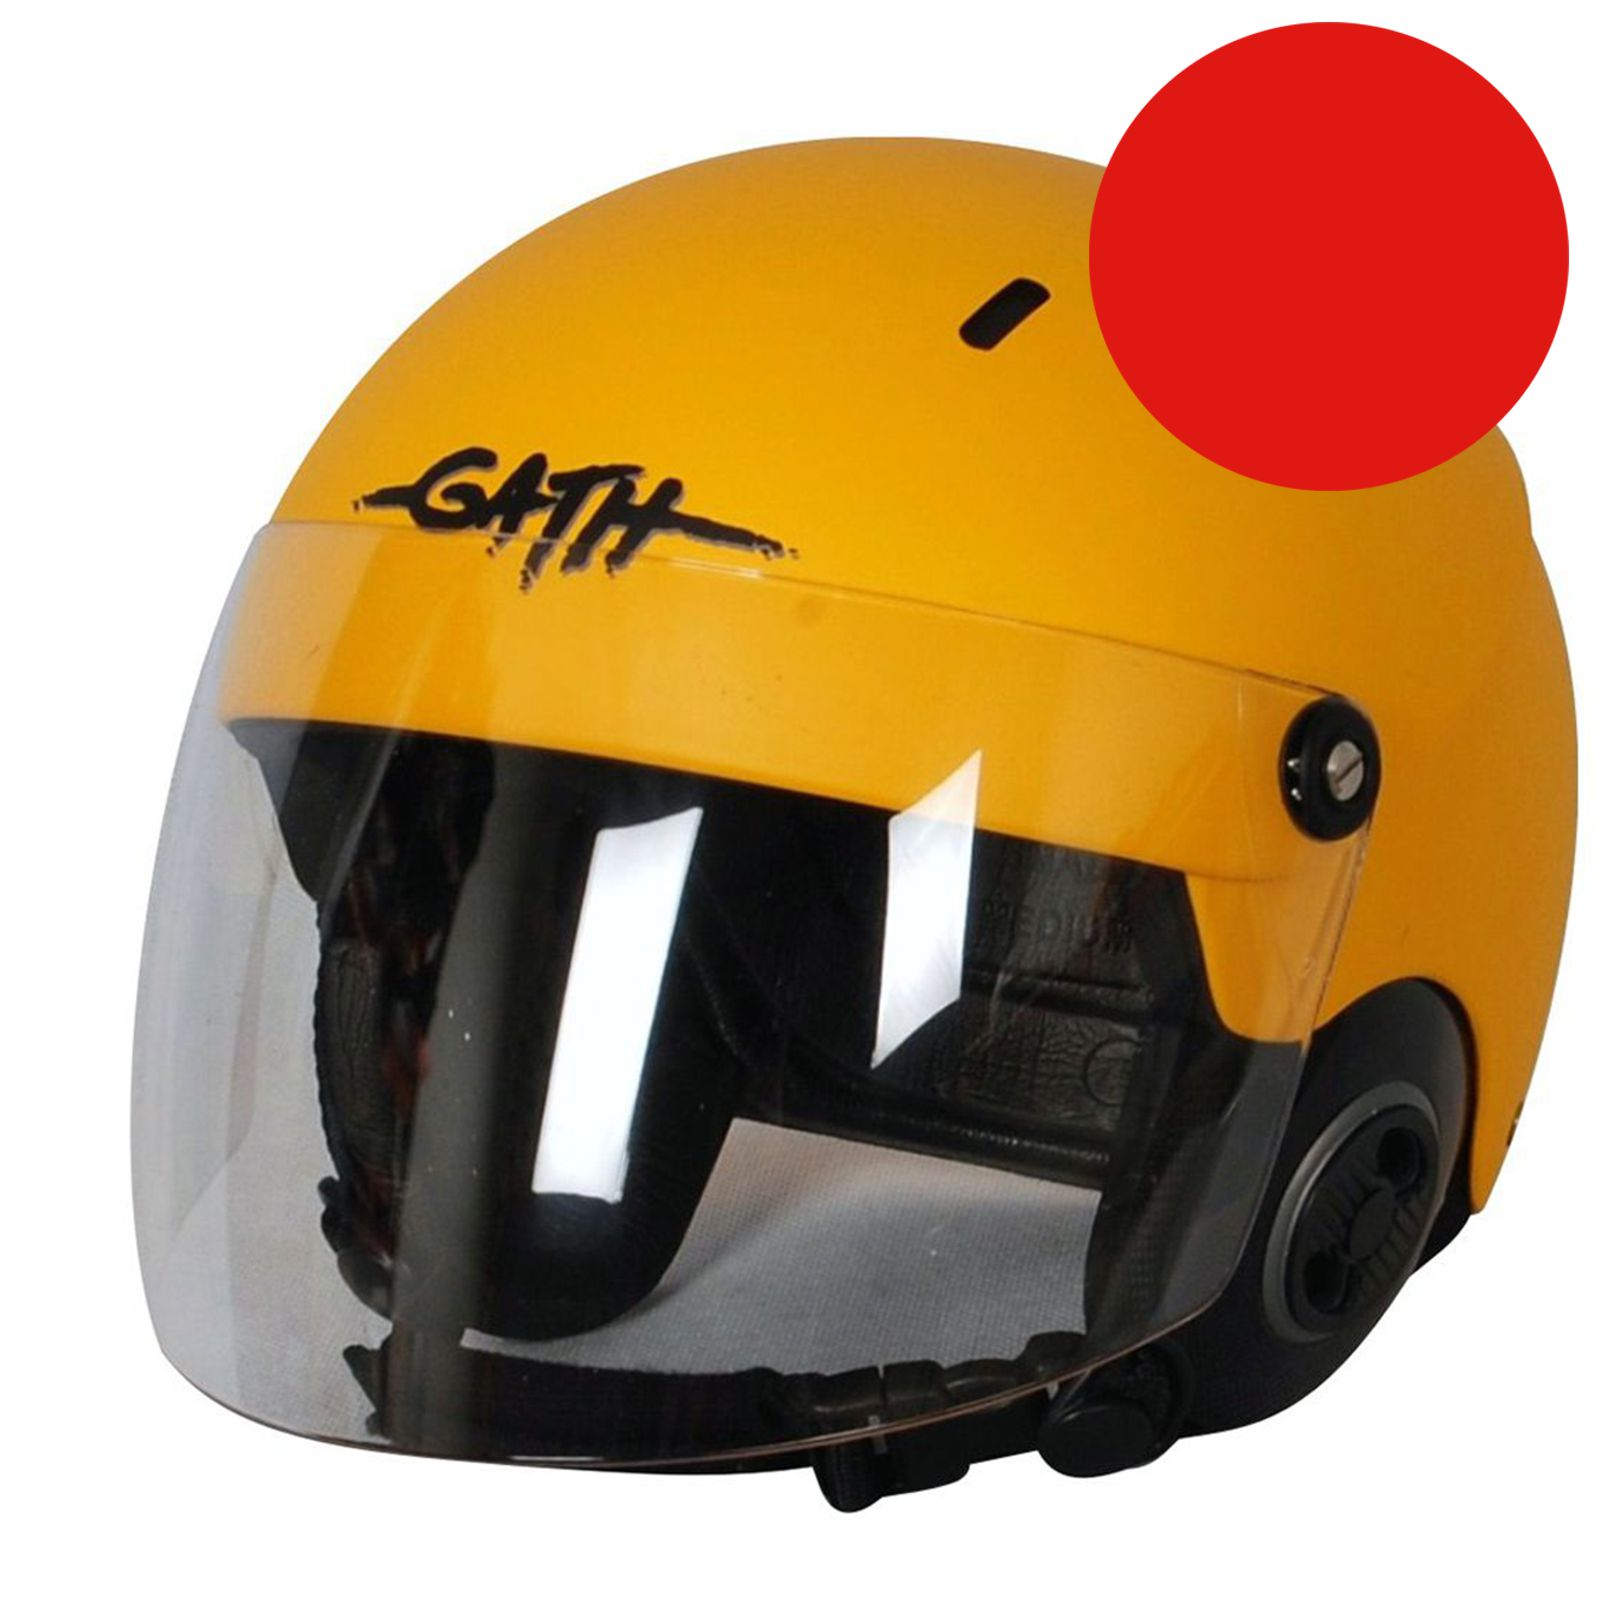 GATH Helm RESCUE Safety Rot matt Gr XXL mit klarem Vollvisier